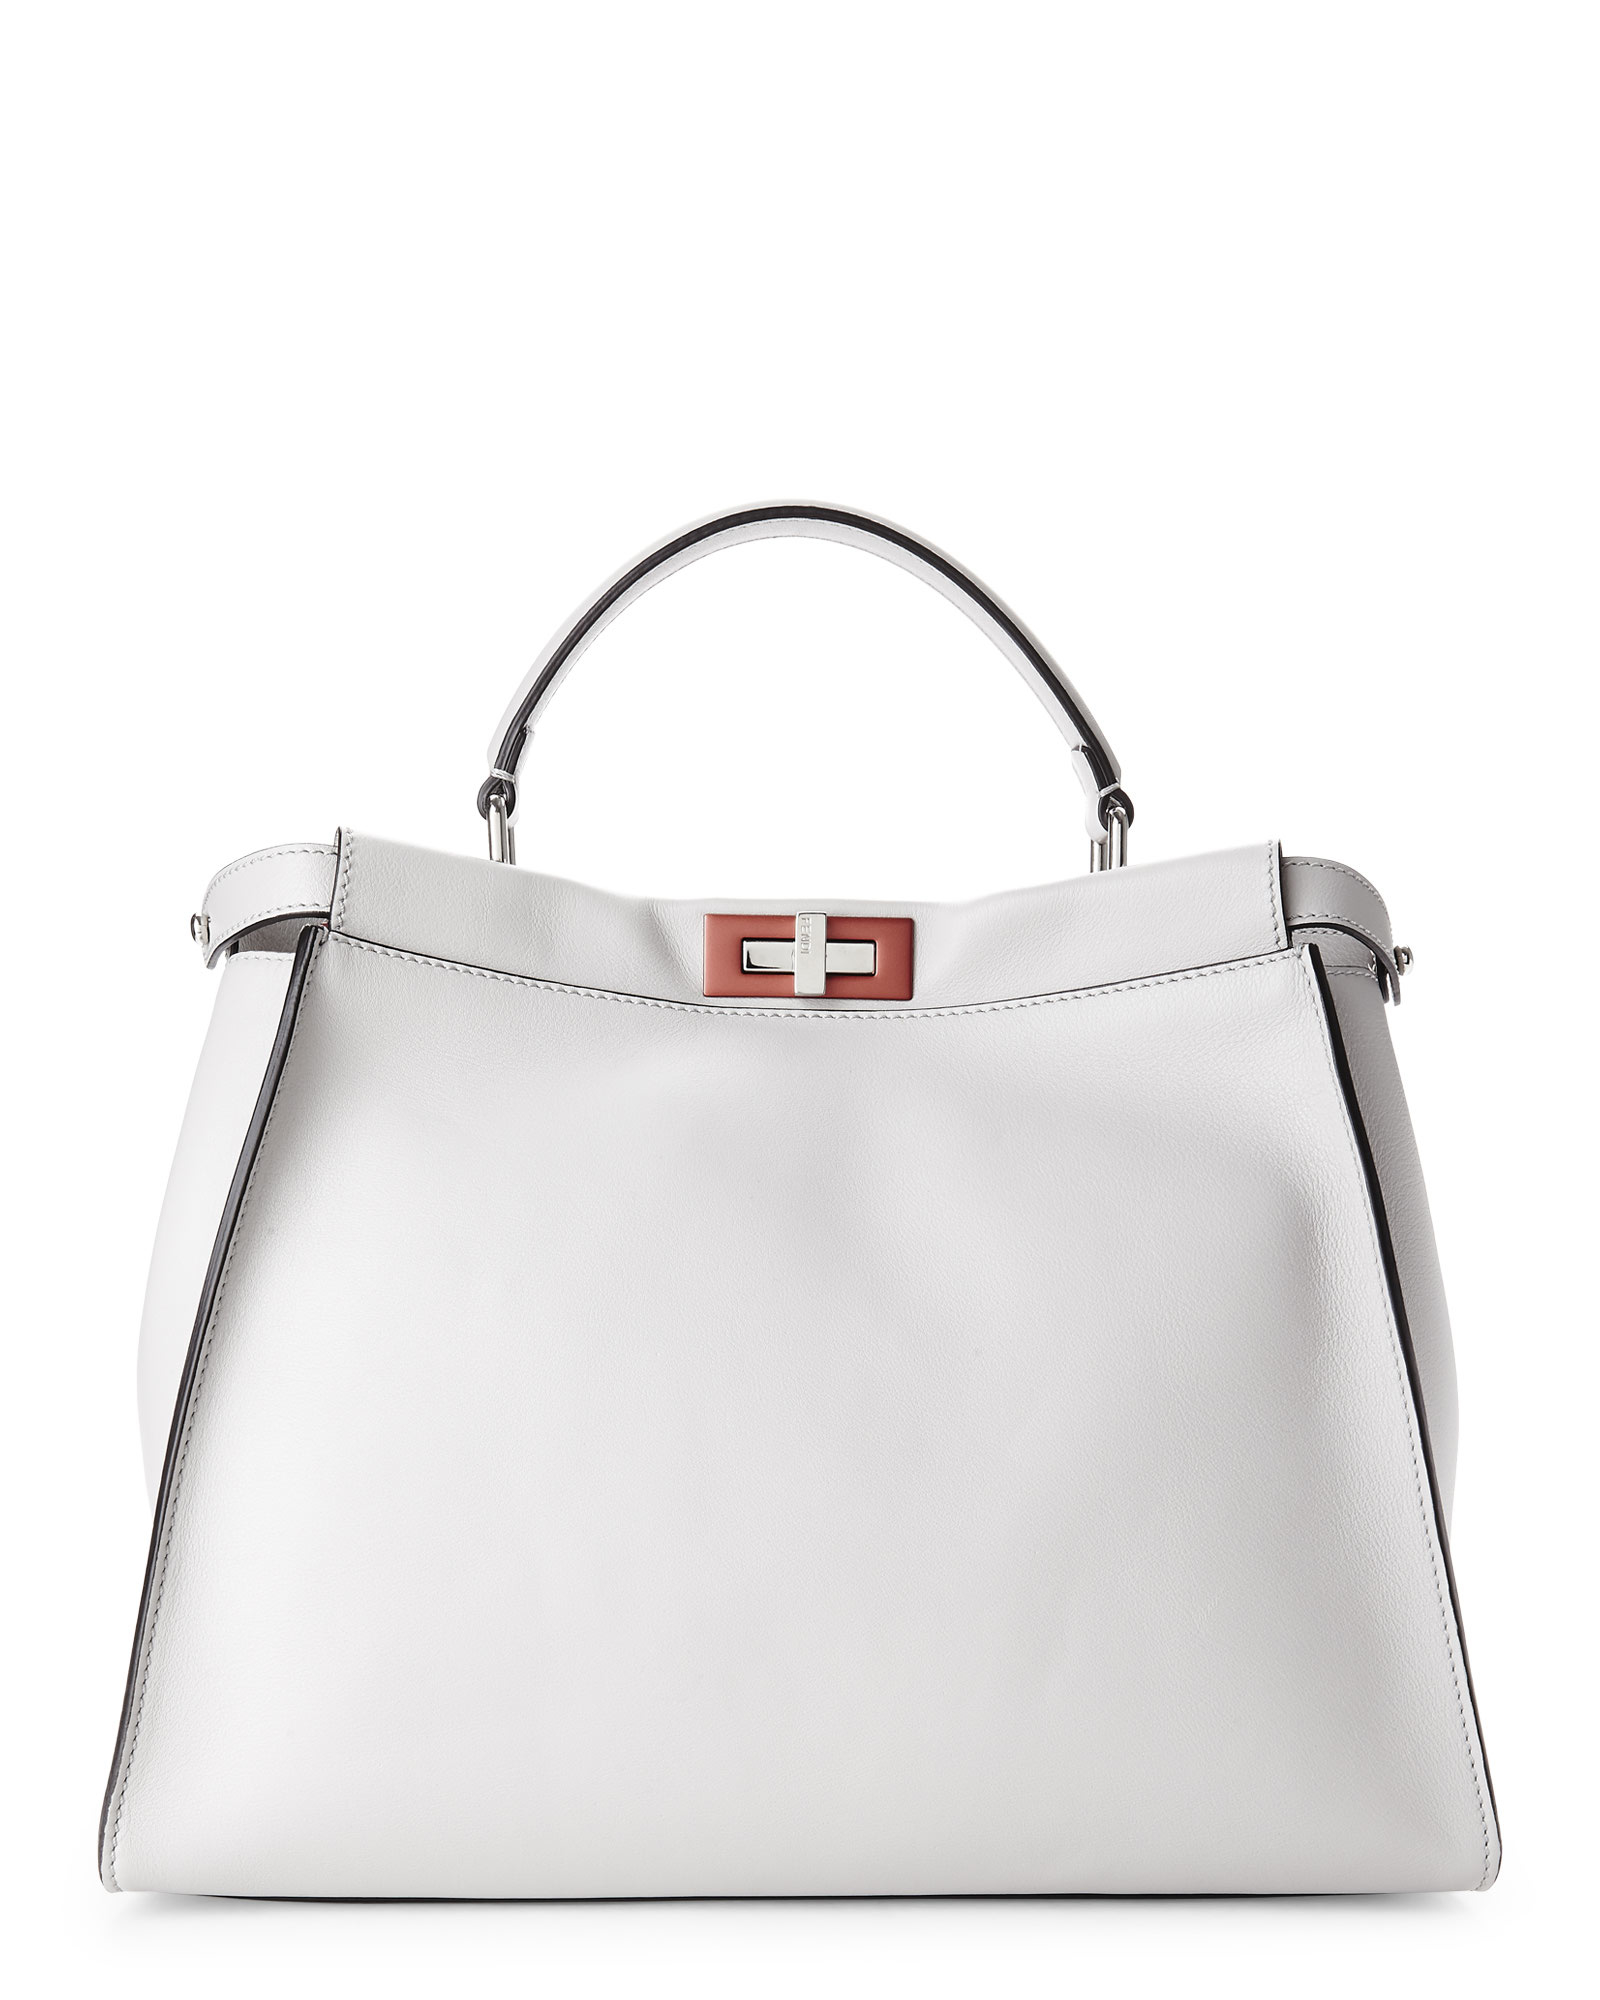 2568b03b60 Lyst - Fendi Grey Large Peekaboo Tote in Gray